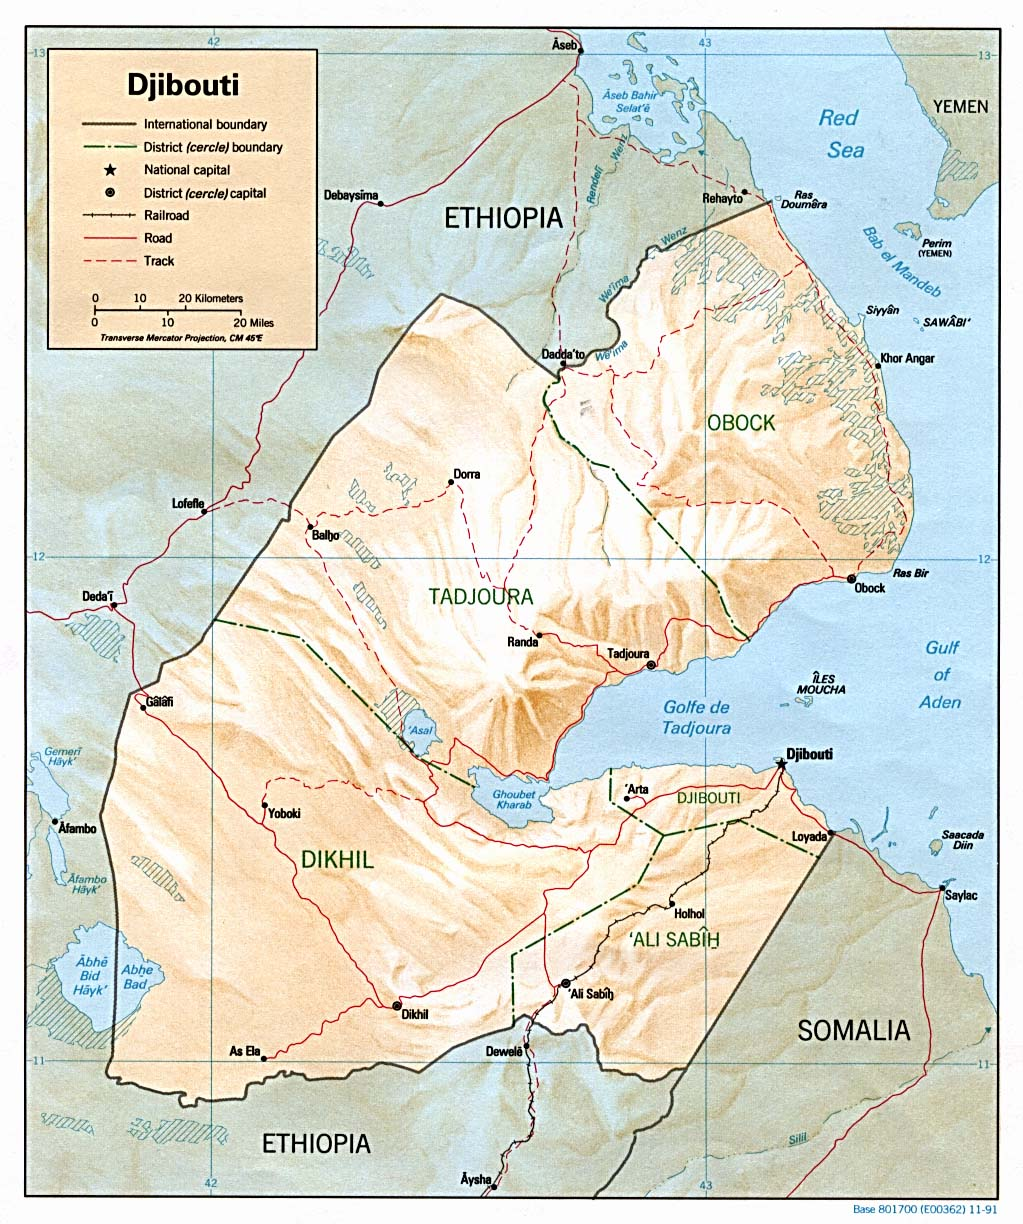 Djibouti On Africa Map.Djibouti Maps Perry Castaneda Map Collection Ut Library Online